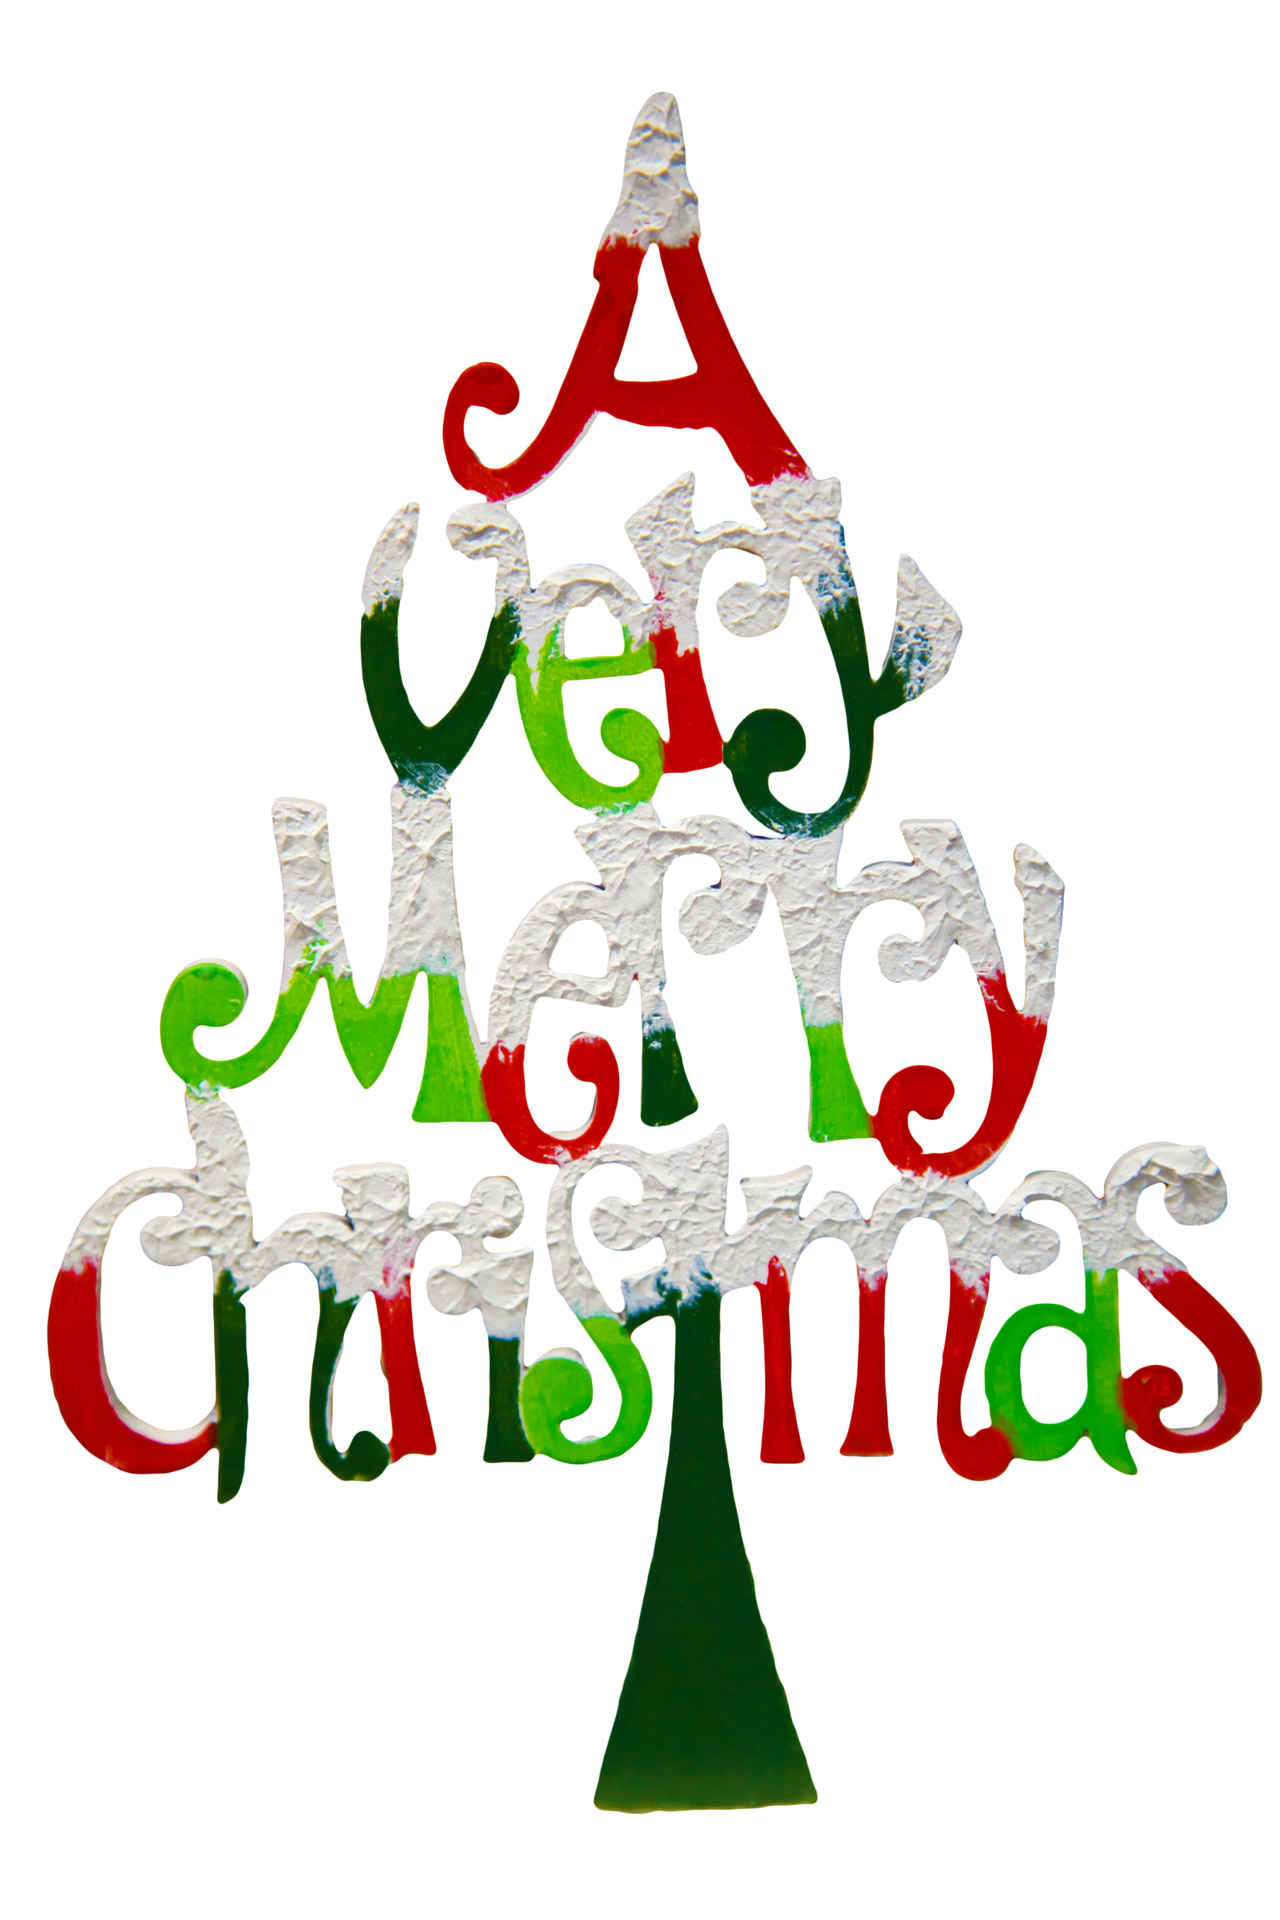 1280x1920 Merry Christmas Words Xmas Tree With Words On It In Clipart